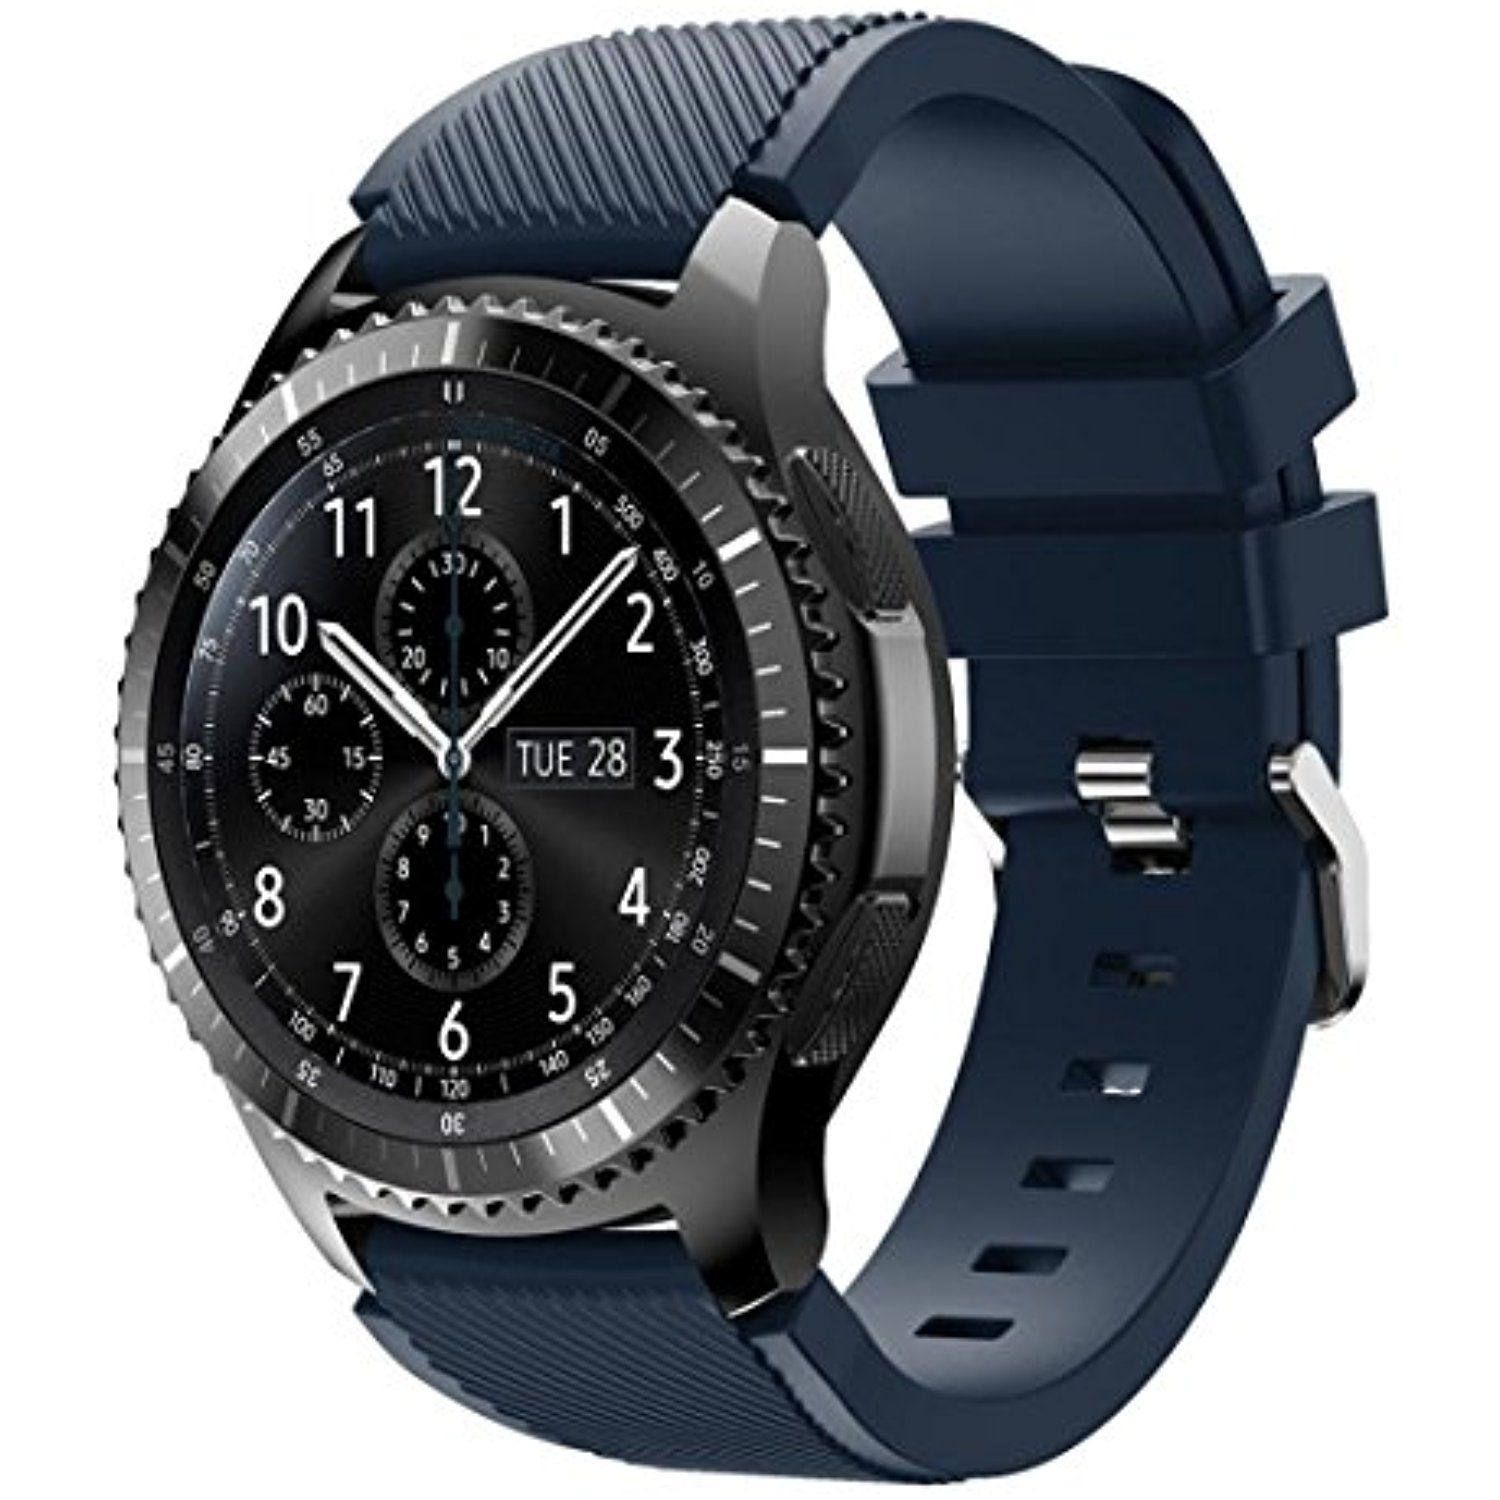 Tloowy Silicone Sport Style Soft Replacement Watch Band Wristband Samsung Gear S3 Frontier Double Side Strap Only Bracelet For Frontierdark Blue Learn More By Visiting The